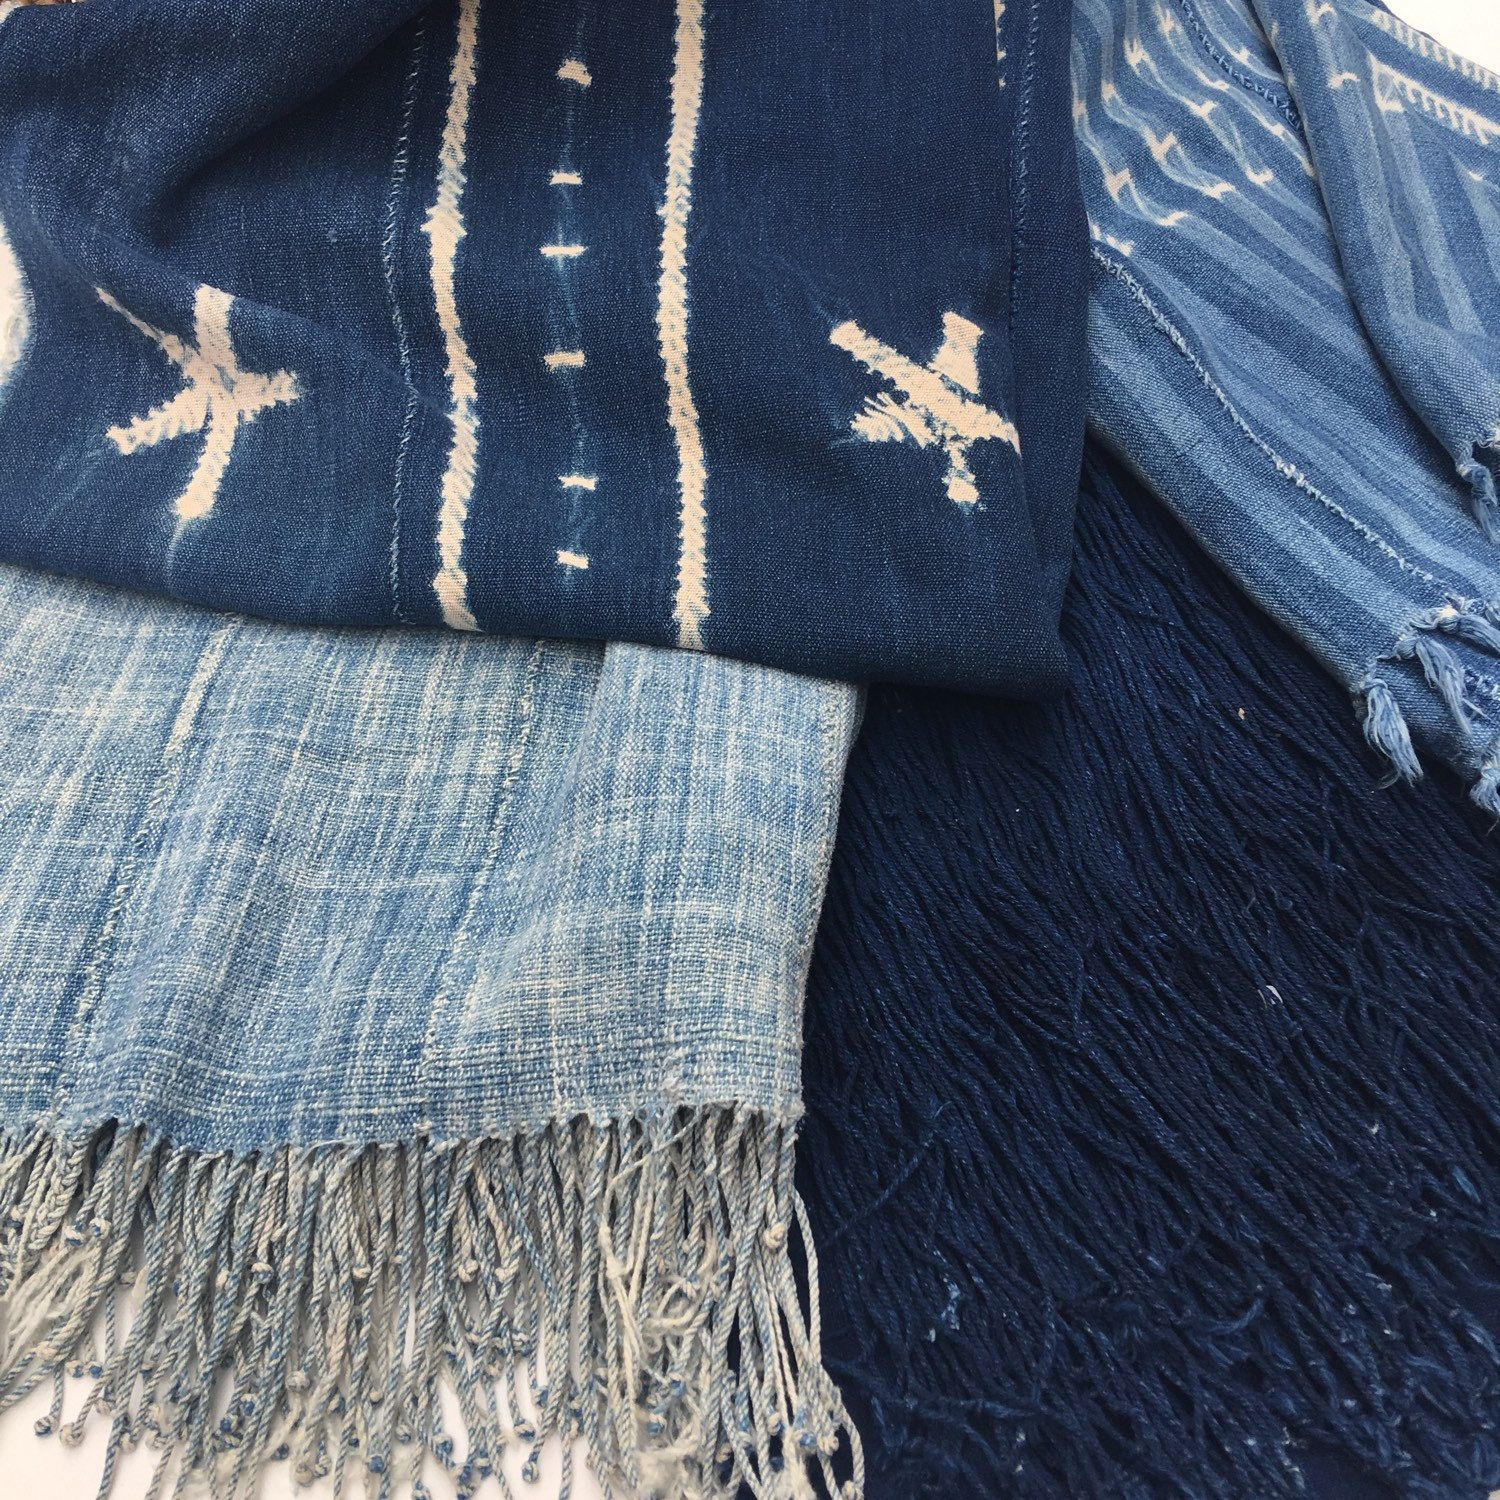 Indigo Mud Cloth, Vintage: New Arrivals all weekend long!